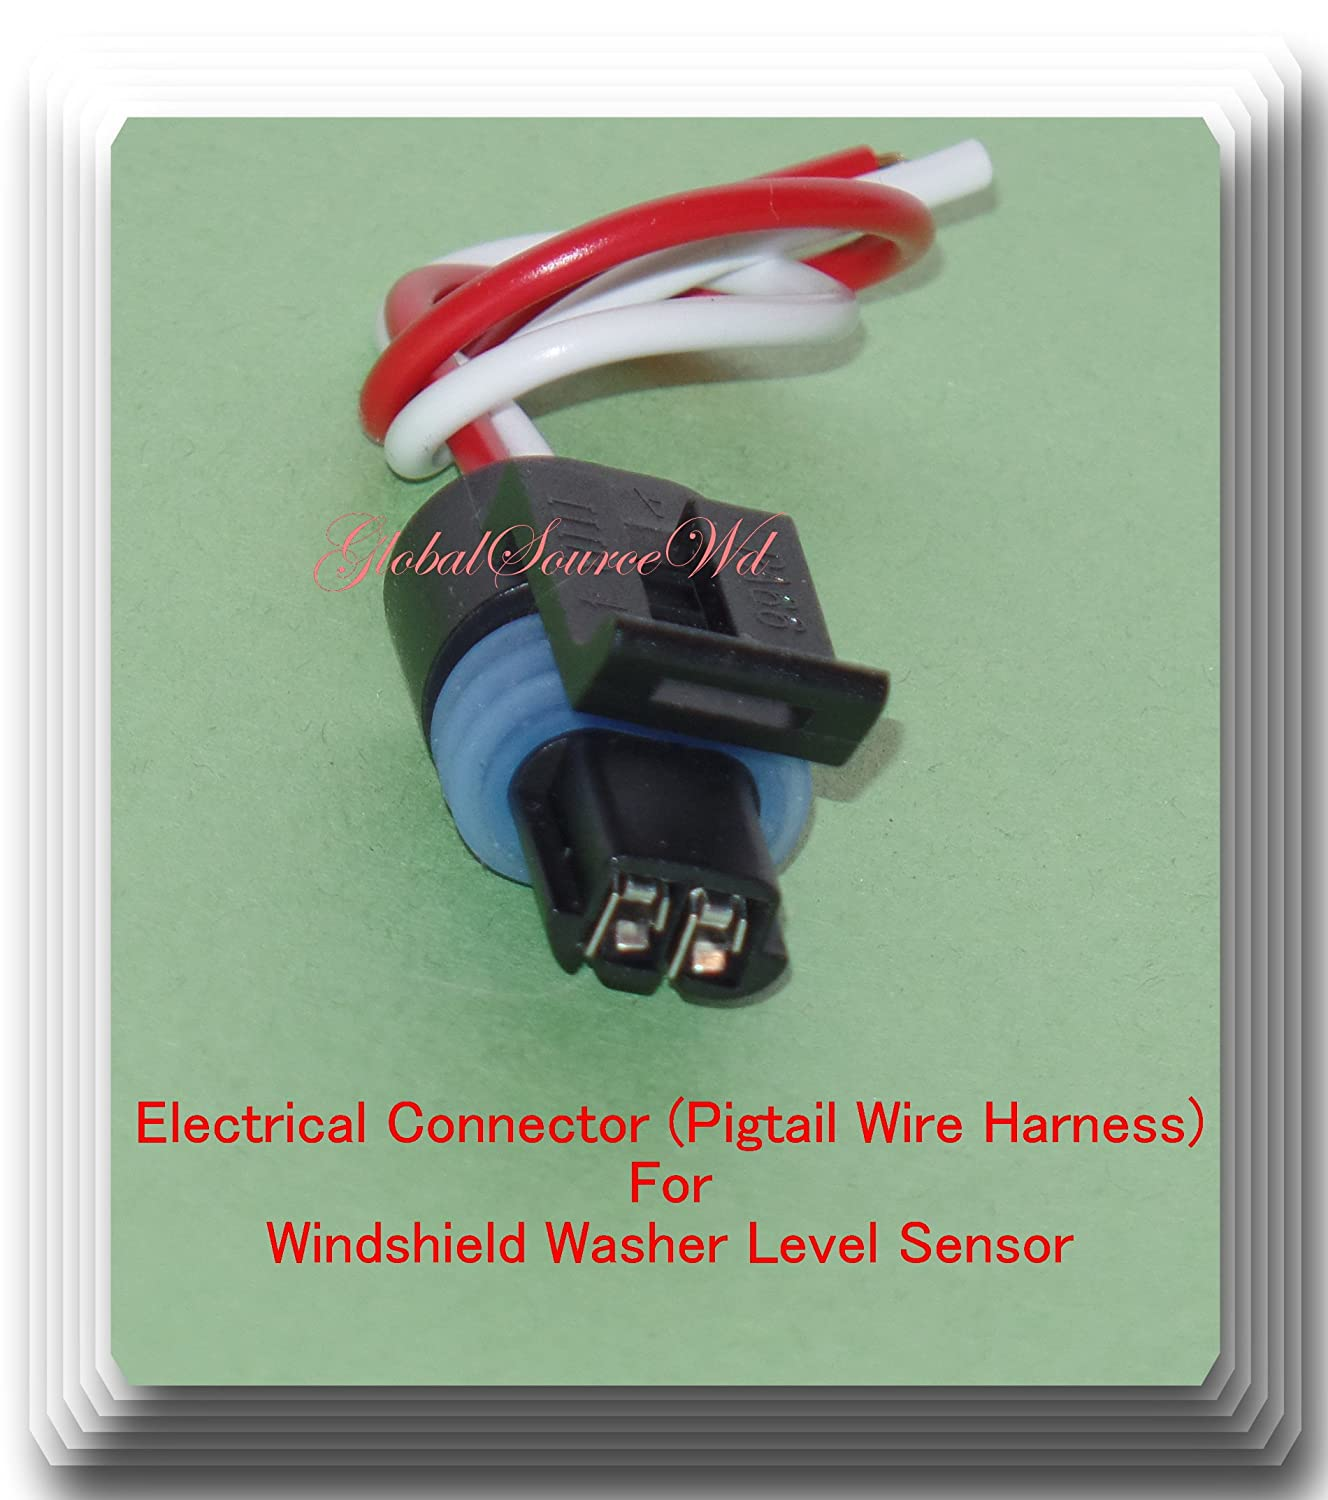 Fls114 Windshield Washer Level Sensor With Electrical 2007 Cadillac Xlr Wiring Harness Connector Pigtail Wire Fits 2004 Chevrolet Corvette